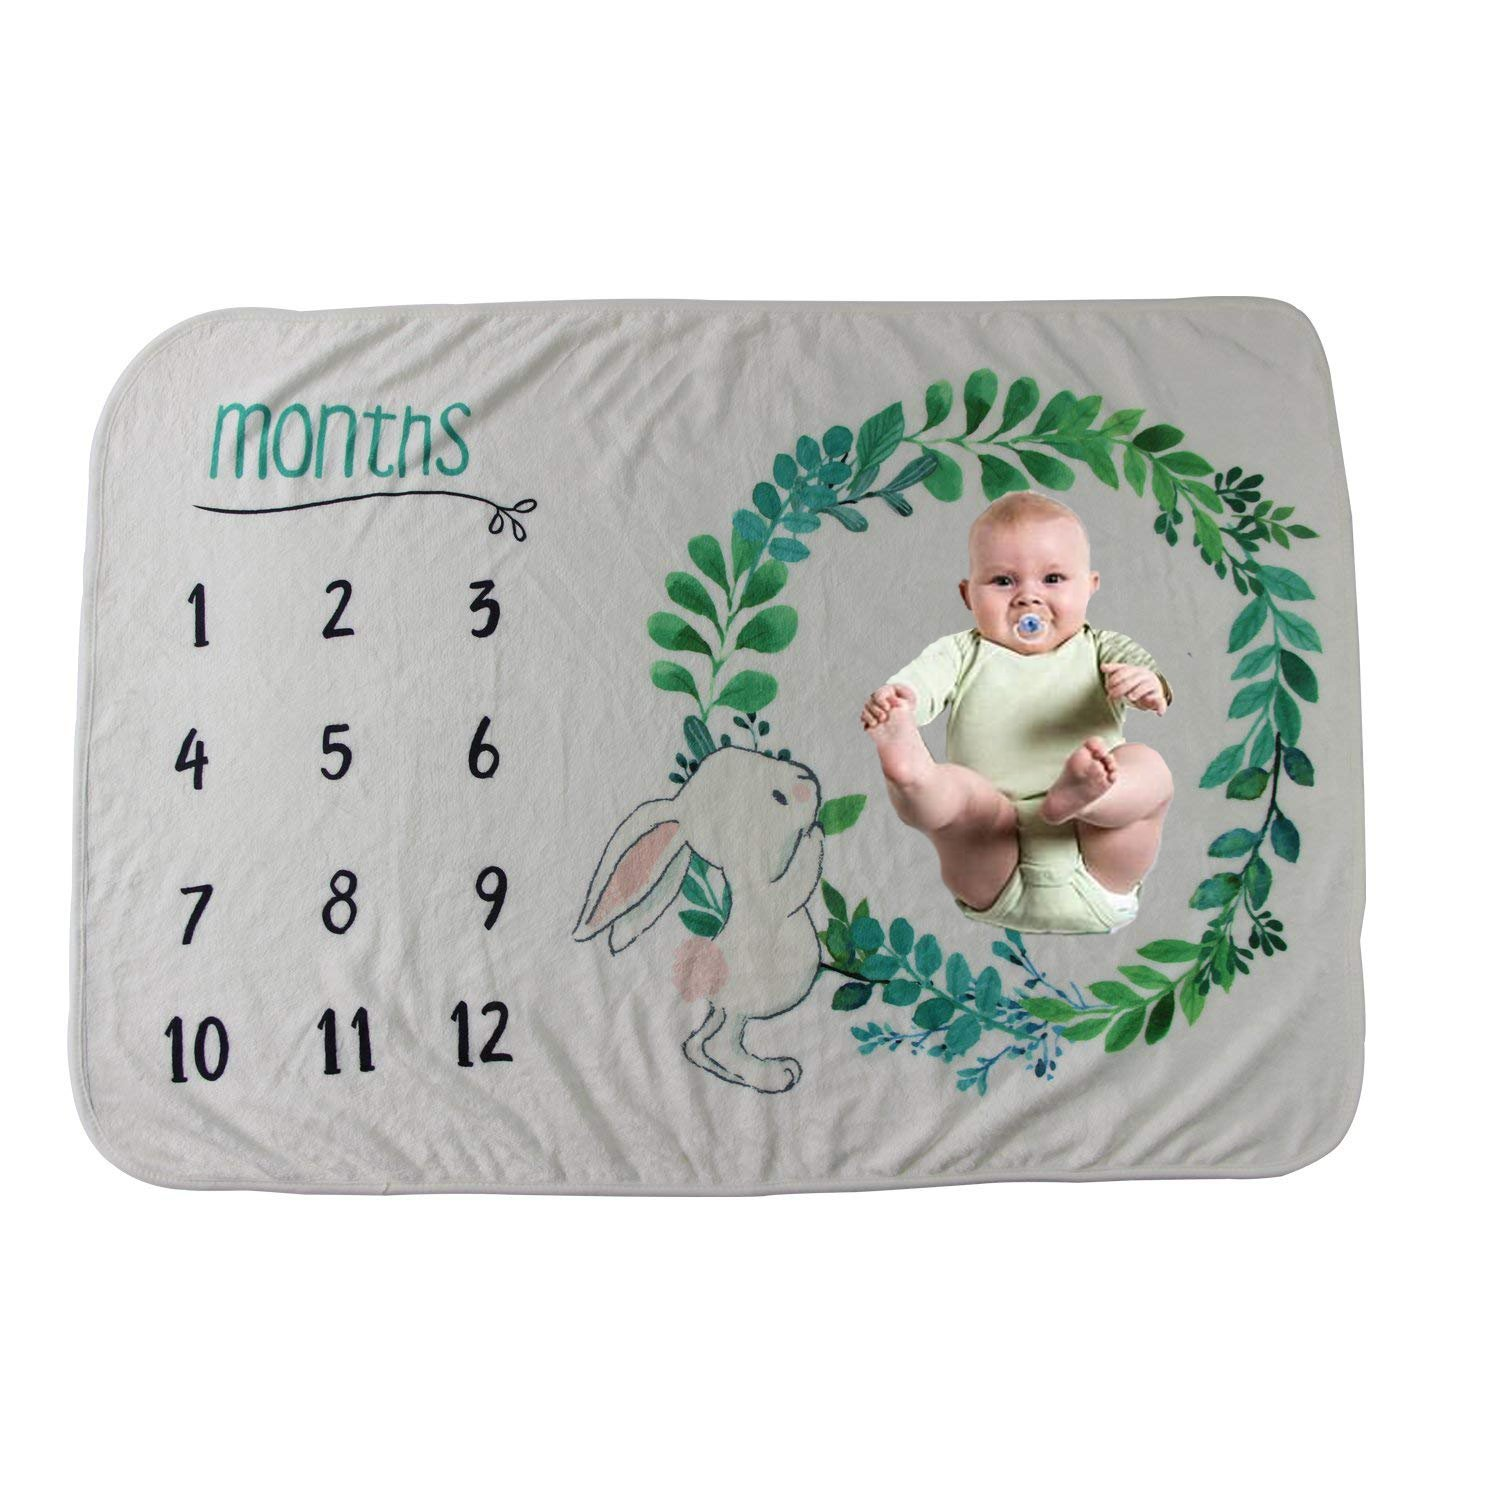 Personalized Gift for Baby Shower Made of Flannel Fleece Features Rabbit Floral Theme with Numbers Print MyGiftsMate Monthly Milestone Blanket for Unisex Baby Birthday Mother/'s /& Father/'s Day